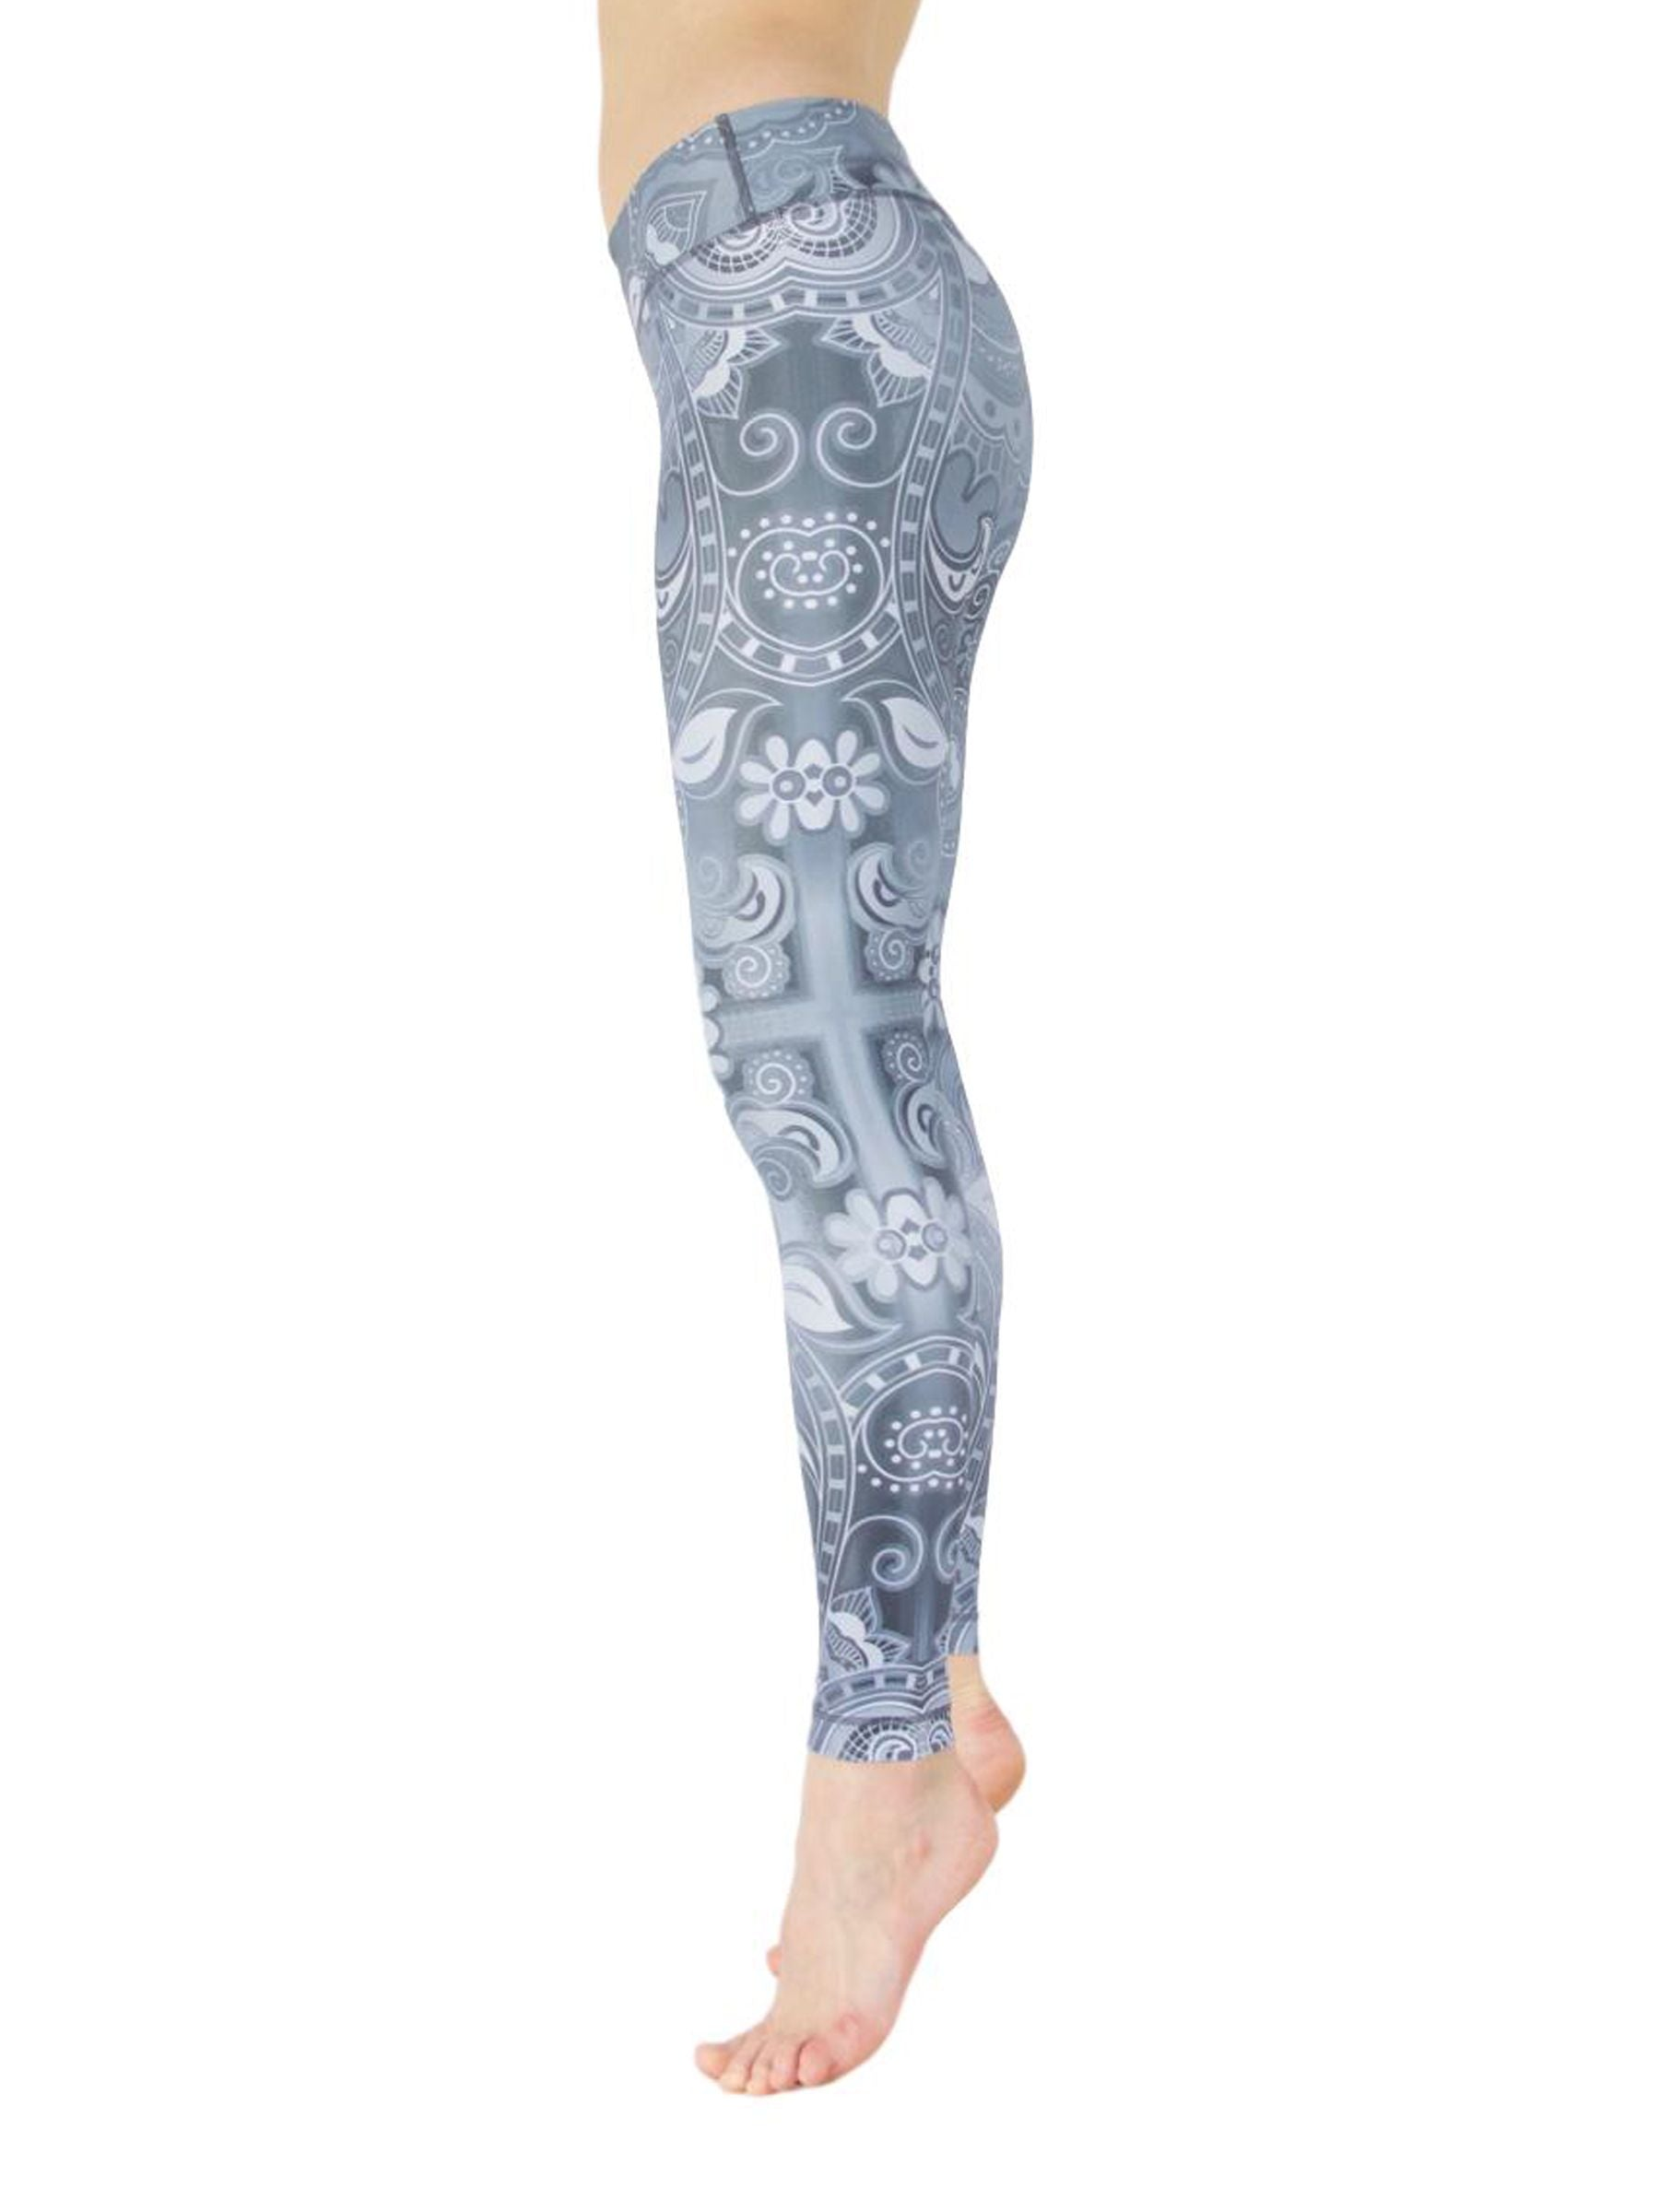 Ibiza Nights by Niyama - High Quality, Yoga Legging for Movement Artists.